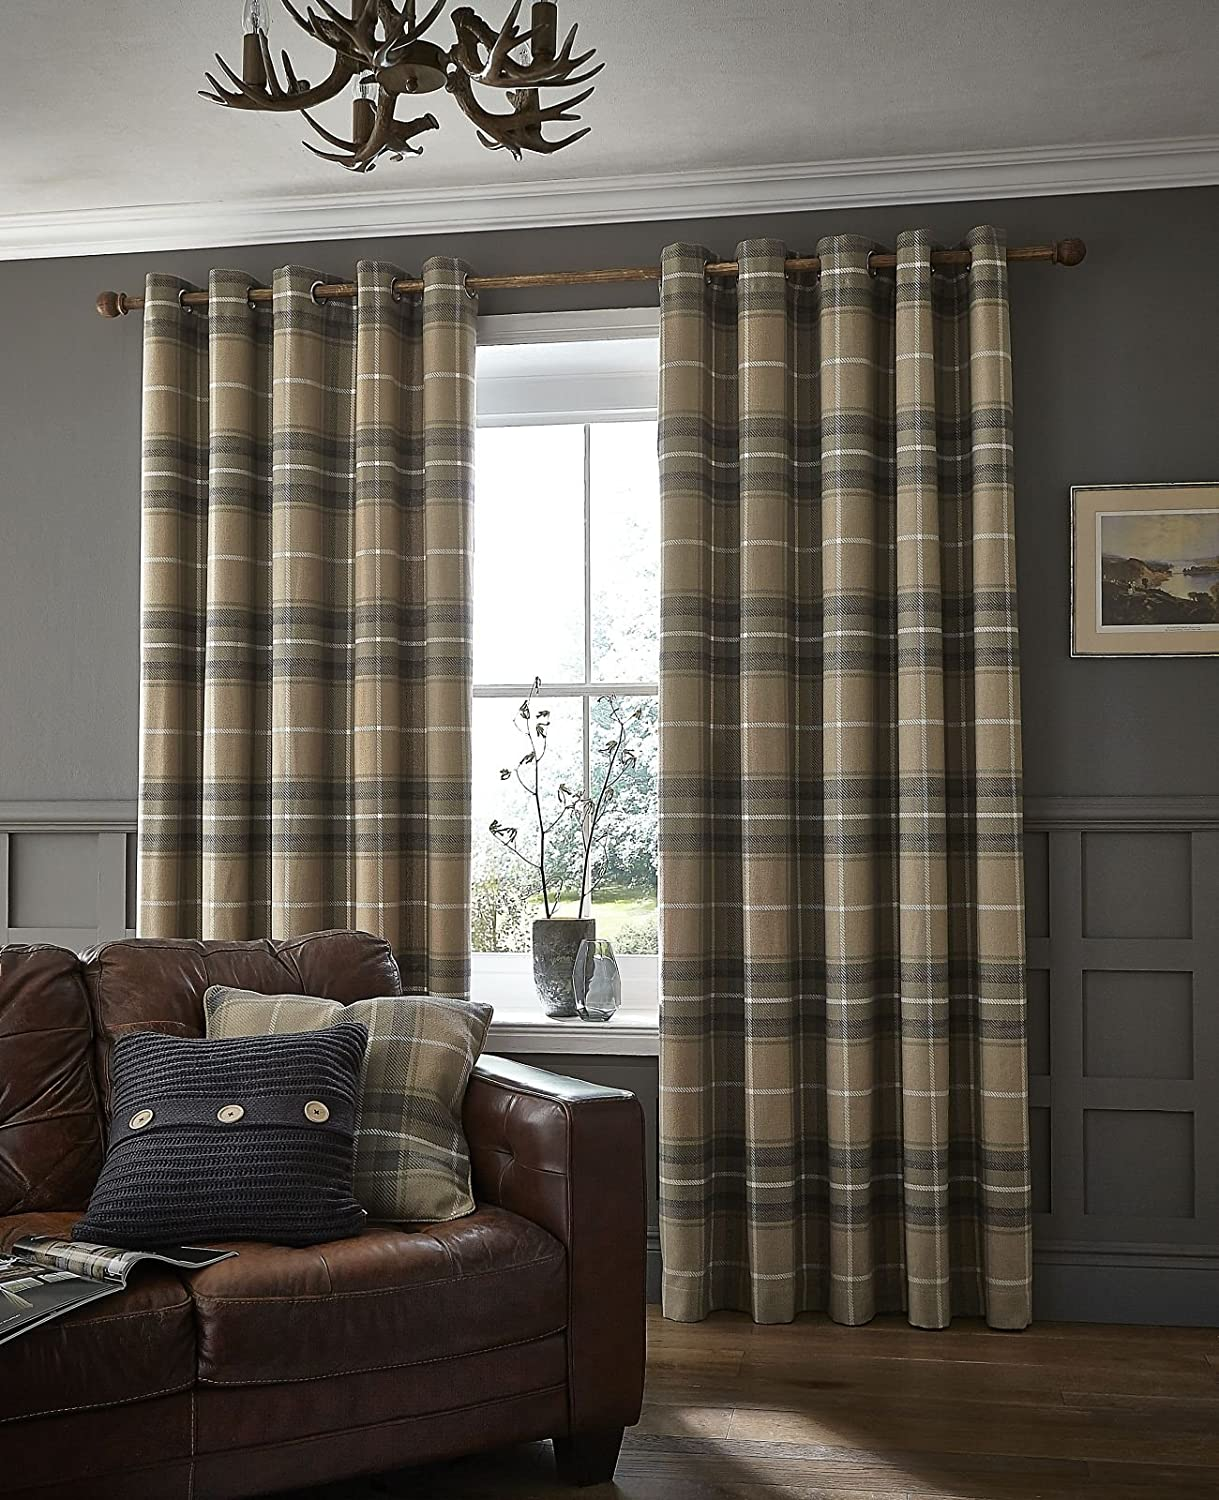 Catherine Lansfield Brushed Heritage Check Eyelet Curtains Grey, 66x54 Inch Turner Bianca DS/42276/W/E6654/GY